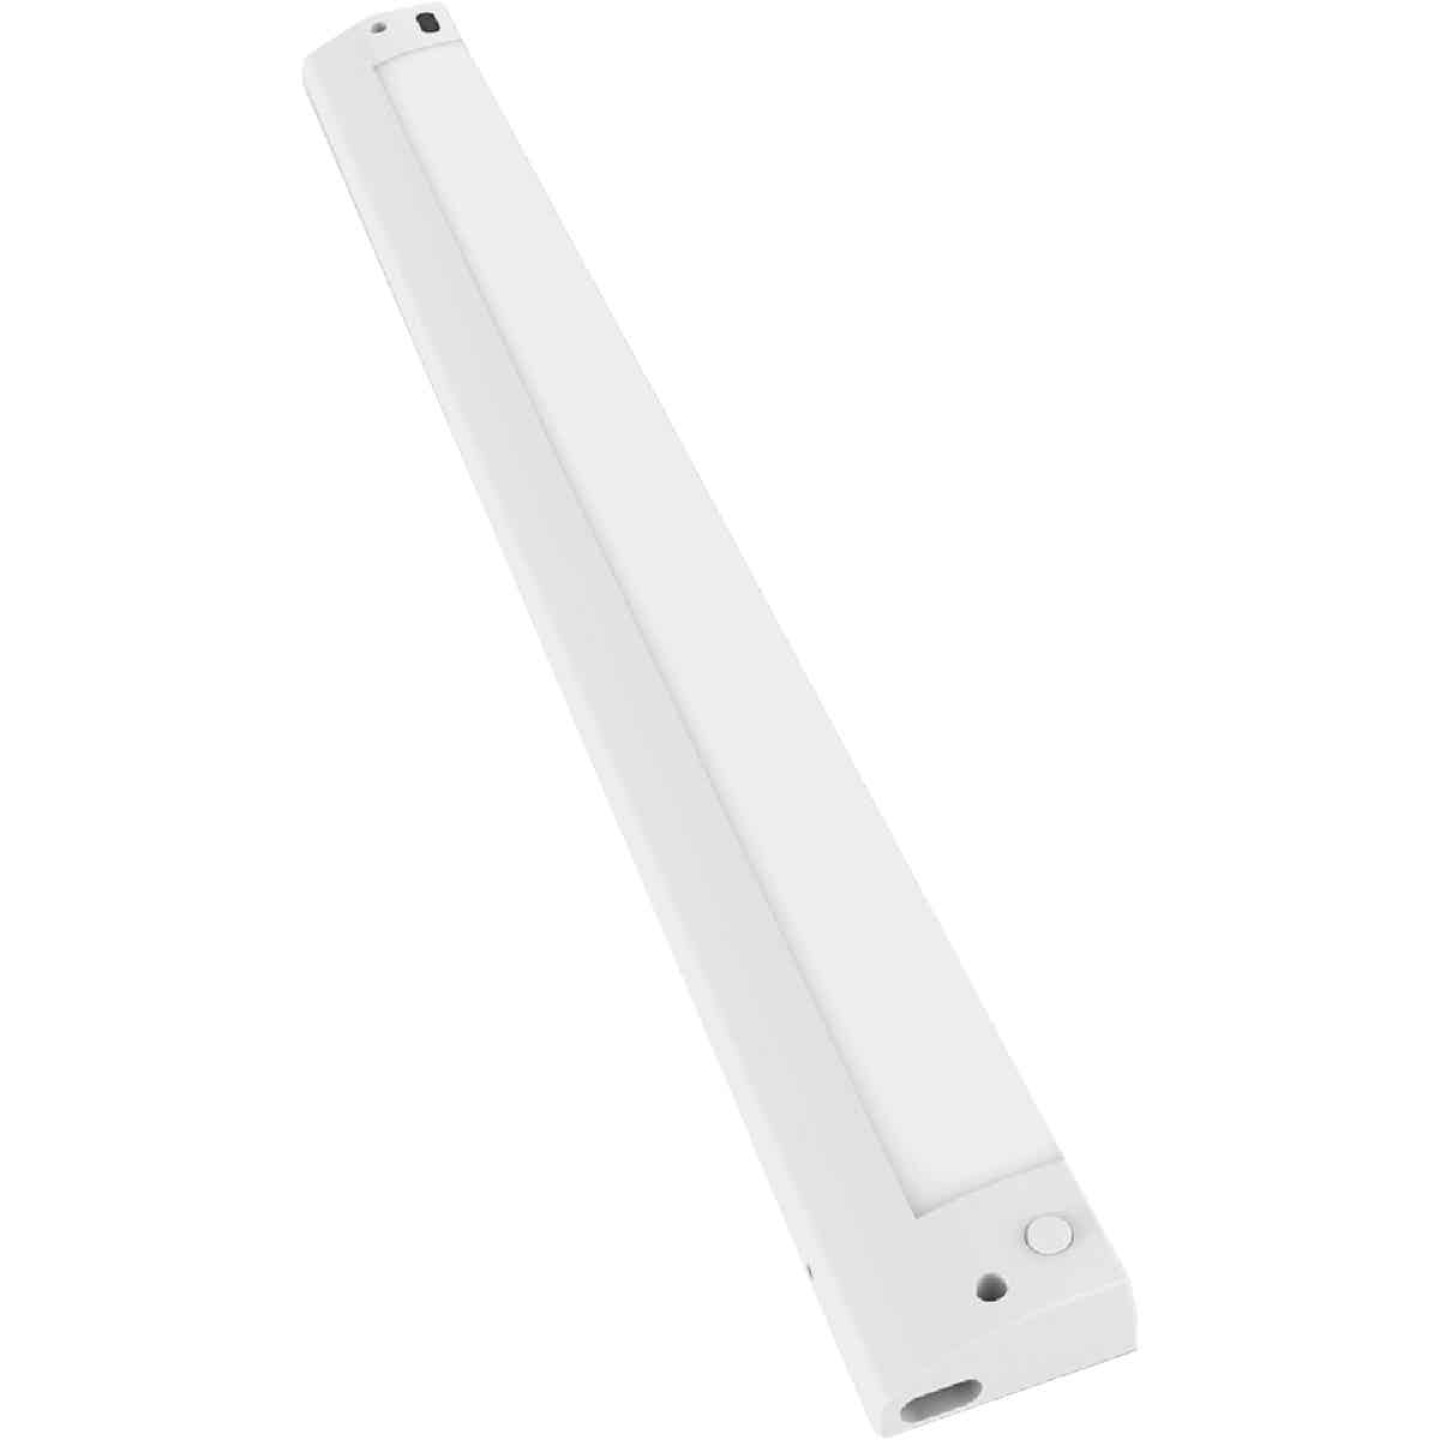 Good Earth Lighting 18 In. Plug-In White LED Color Temperature Changing Under Cabinet Light Image 1